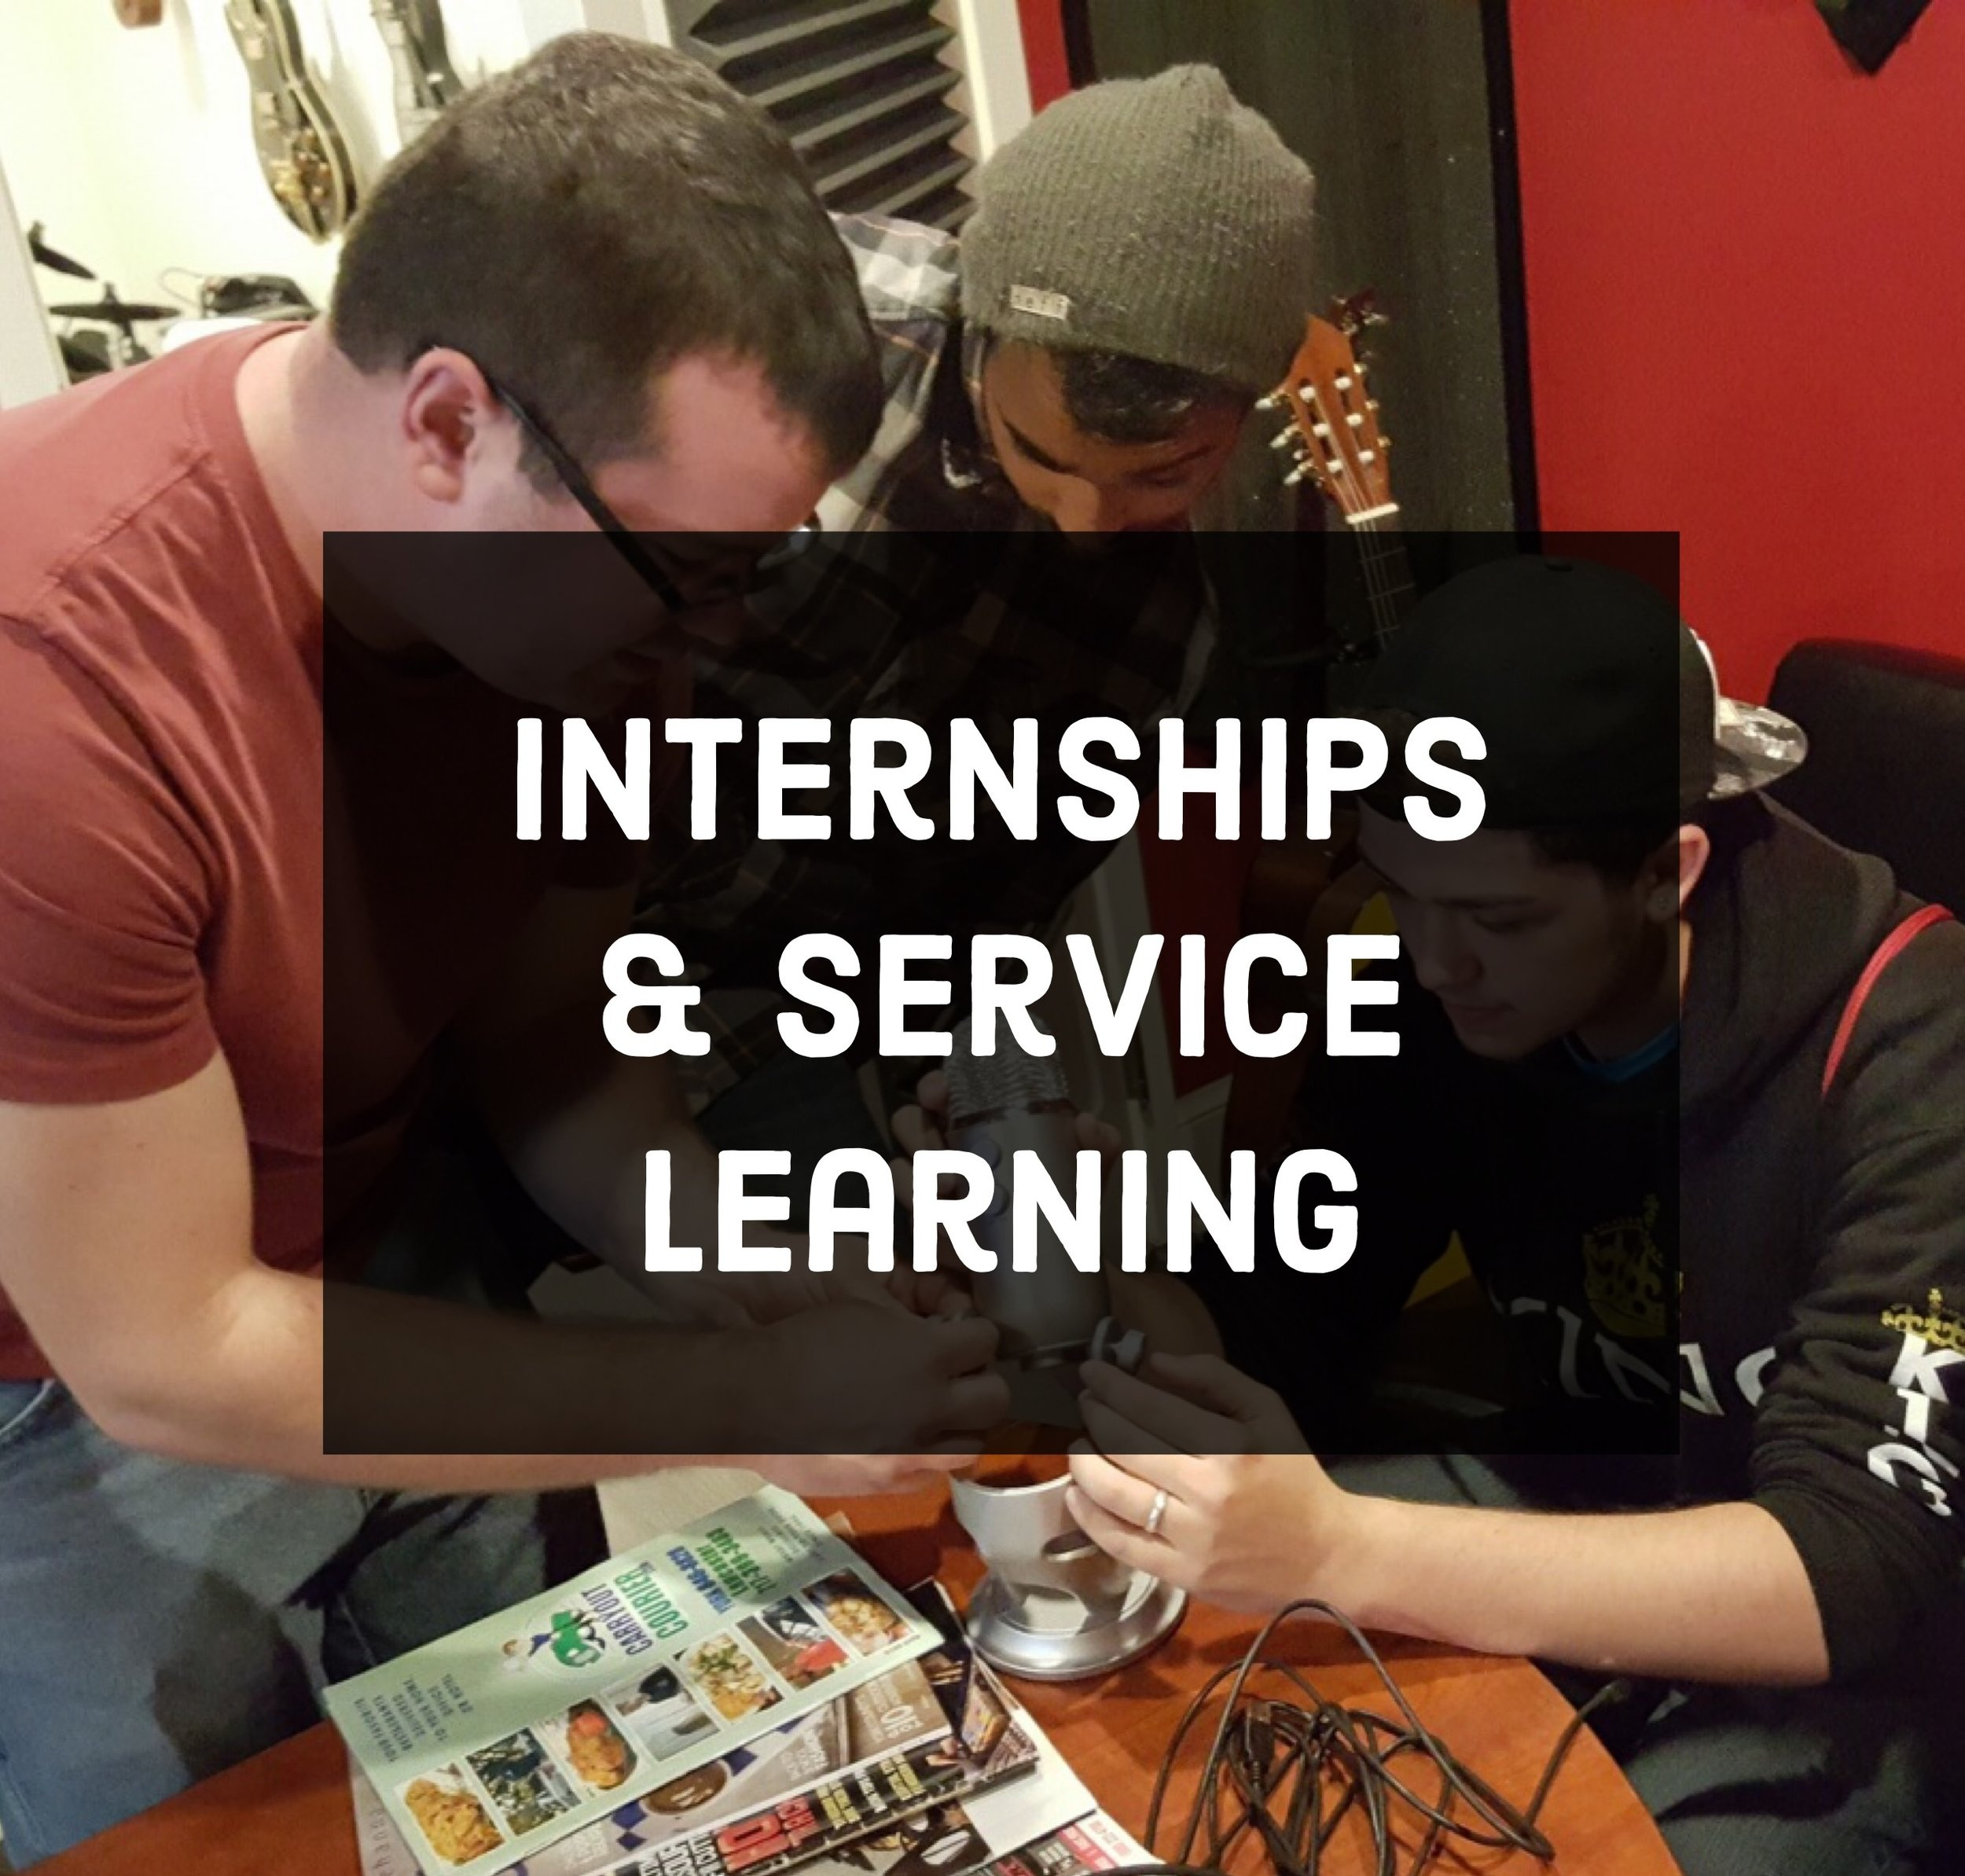 - For the past 4 years, students have been interning with Studio 117 from over 15 school districts in York County and beyond. Having the chance of being mentored directly by some of the most creative minds in the area can be a life changing experience. Not only do we provide a young and relate-able experience in regards to the music industry, but we take the time to find what our interns are truly passionate about. From there, we can expose the students to careers that are directly related to their passions, rather than focusing solely on music. With this approach our interns are impacted in all aspects of their life and gain a sense of clarity for their future.